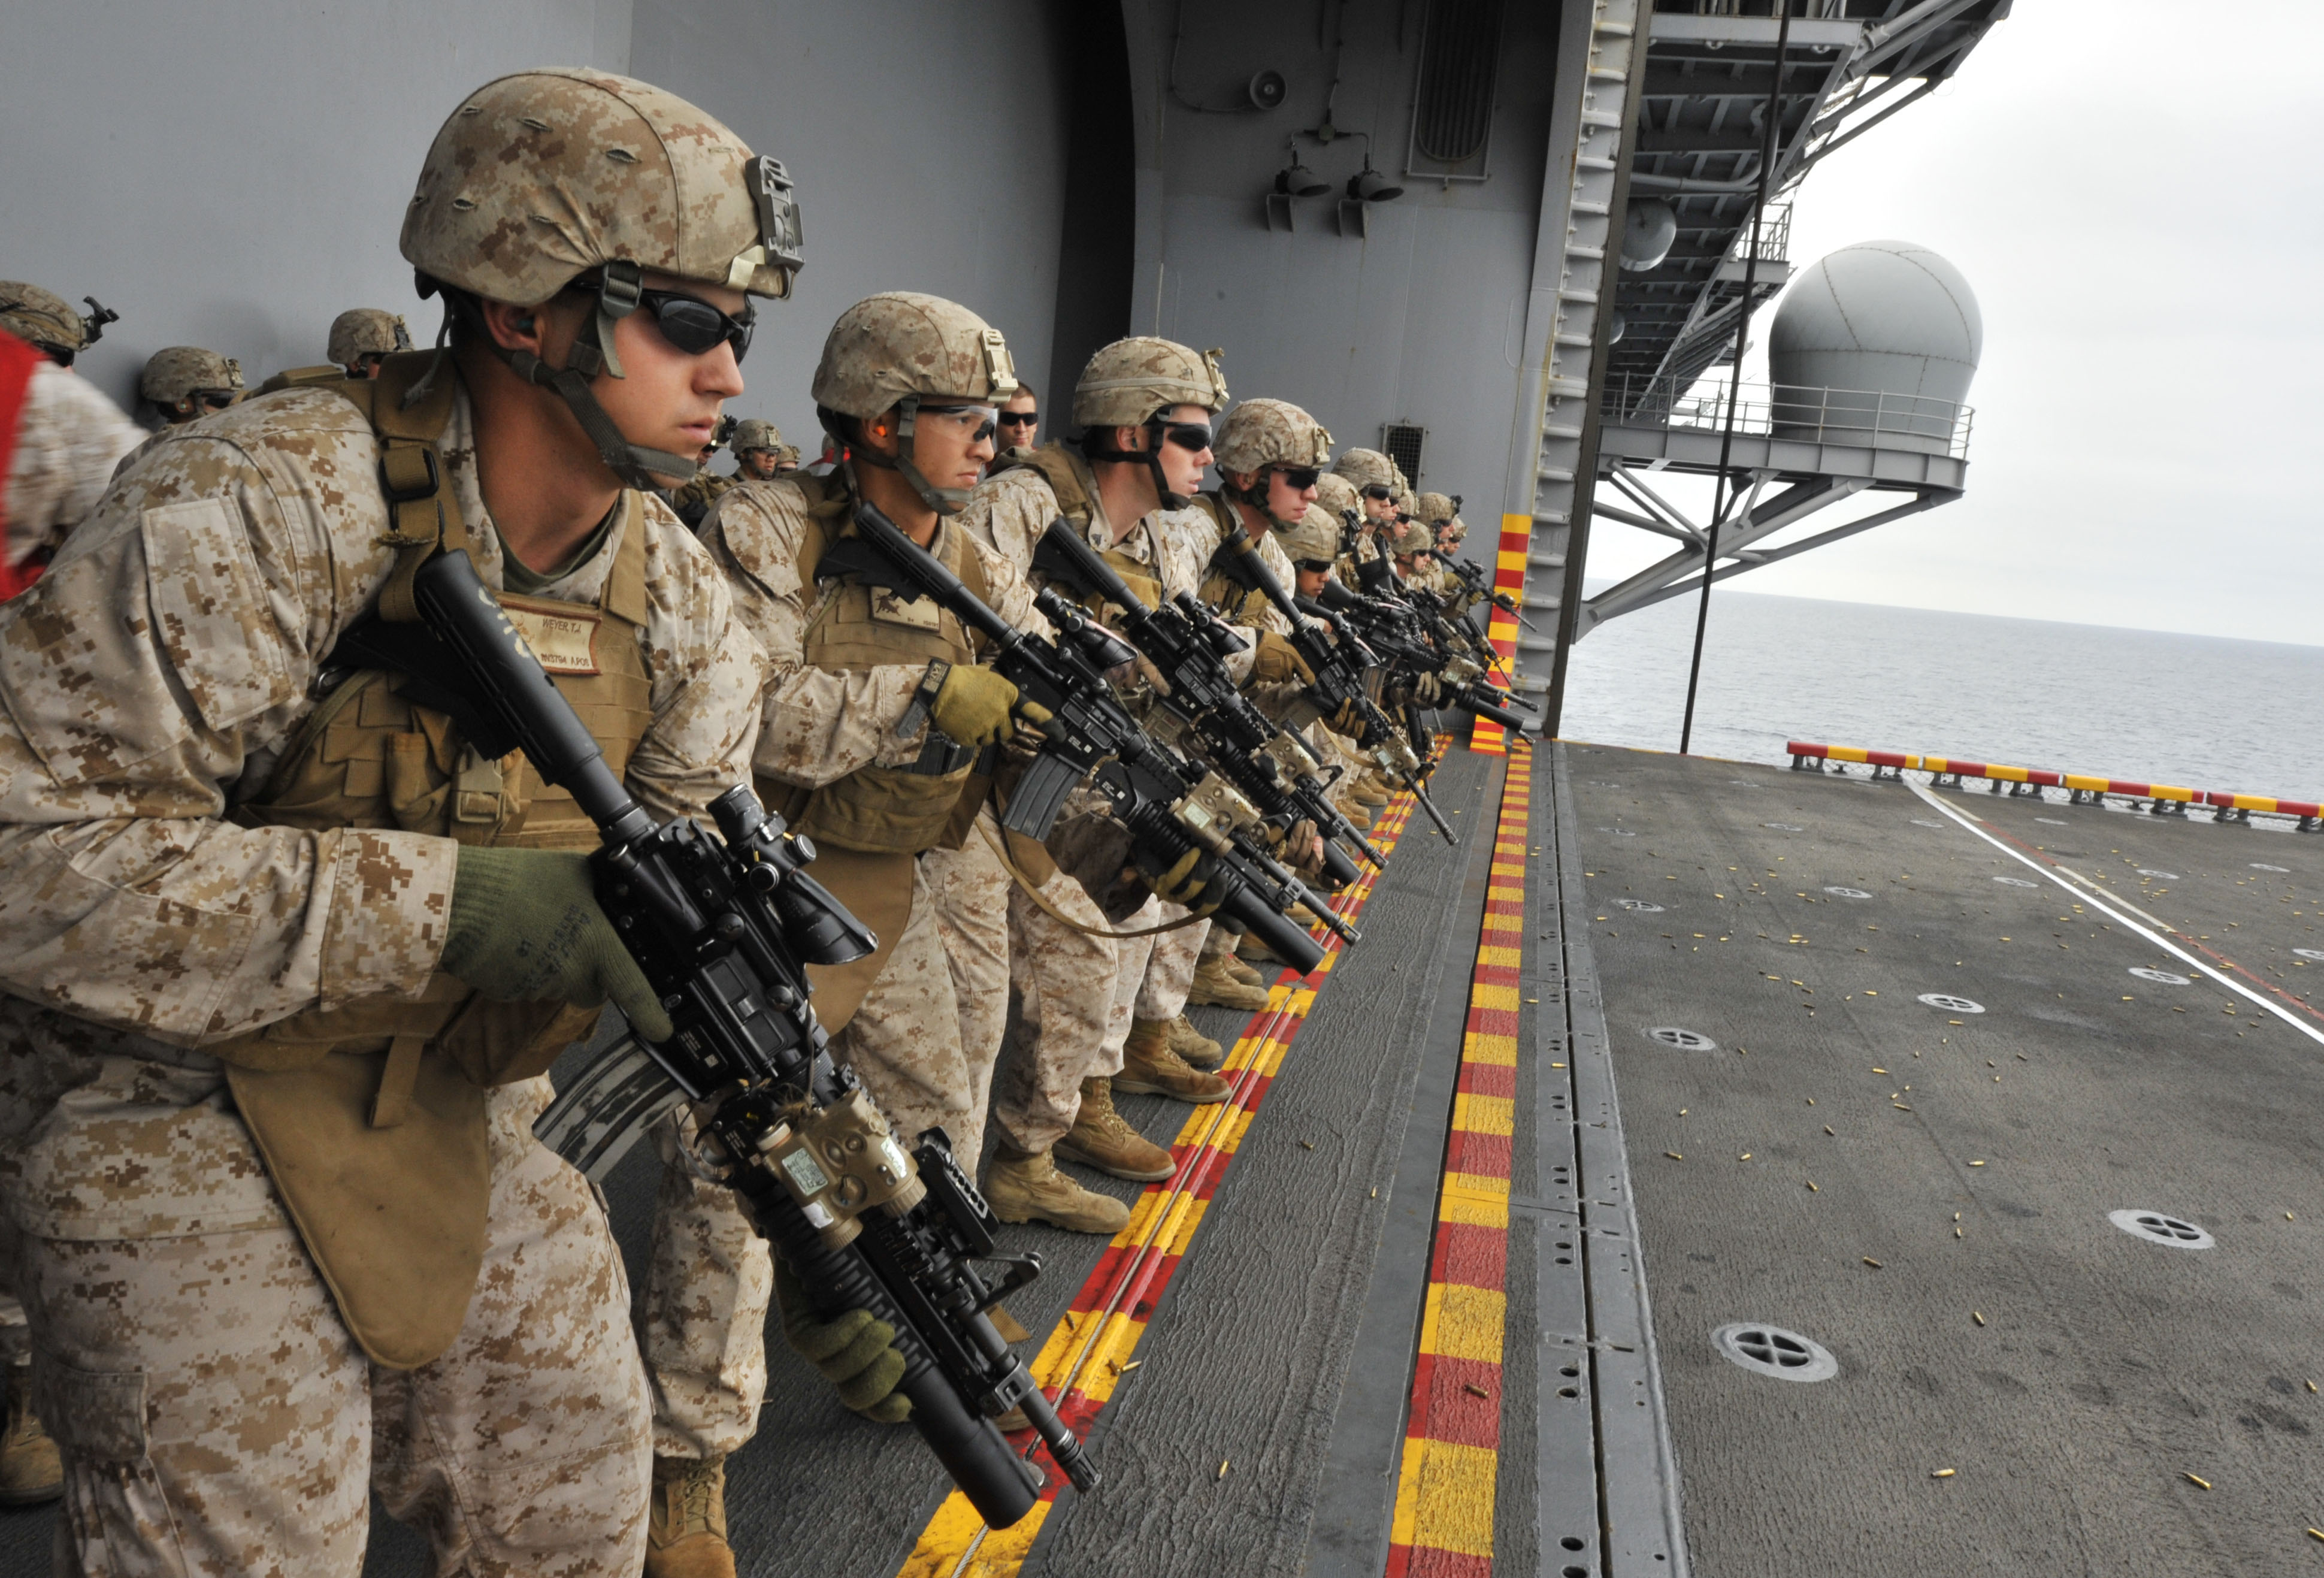 File:US Navy 110910-N-KS651-945 Marines assigned to the ...